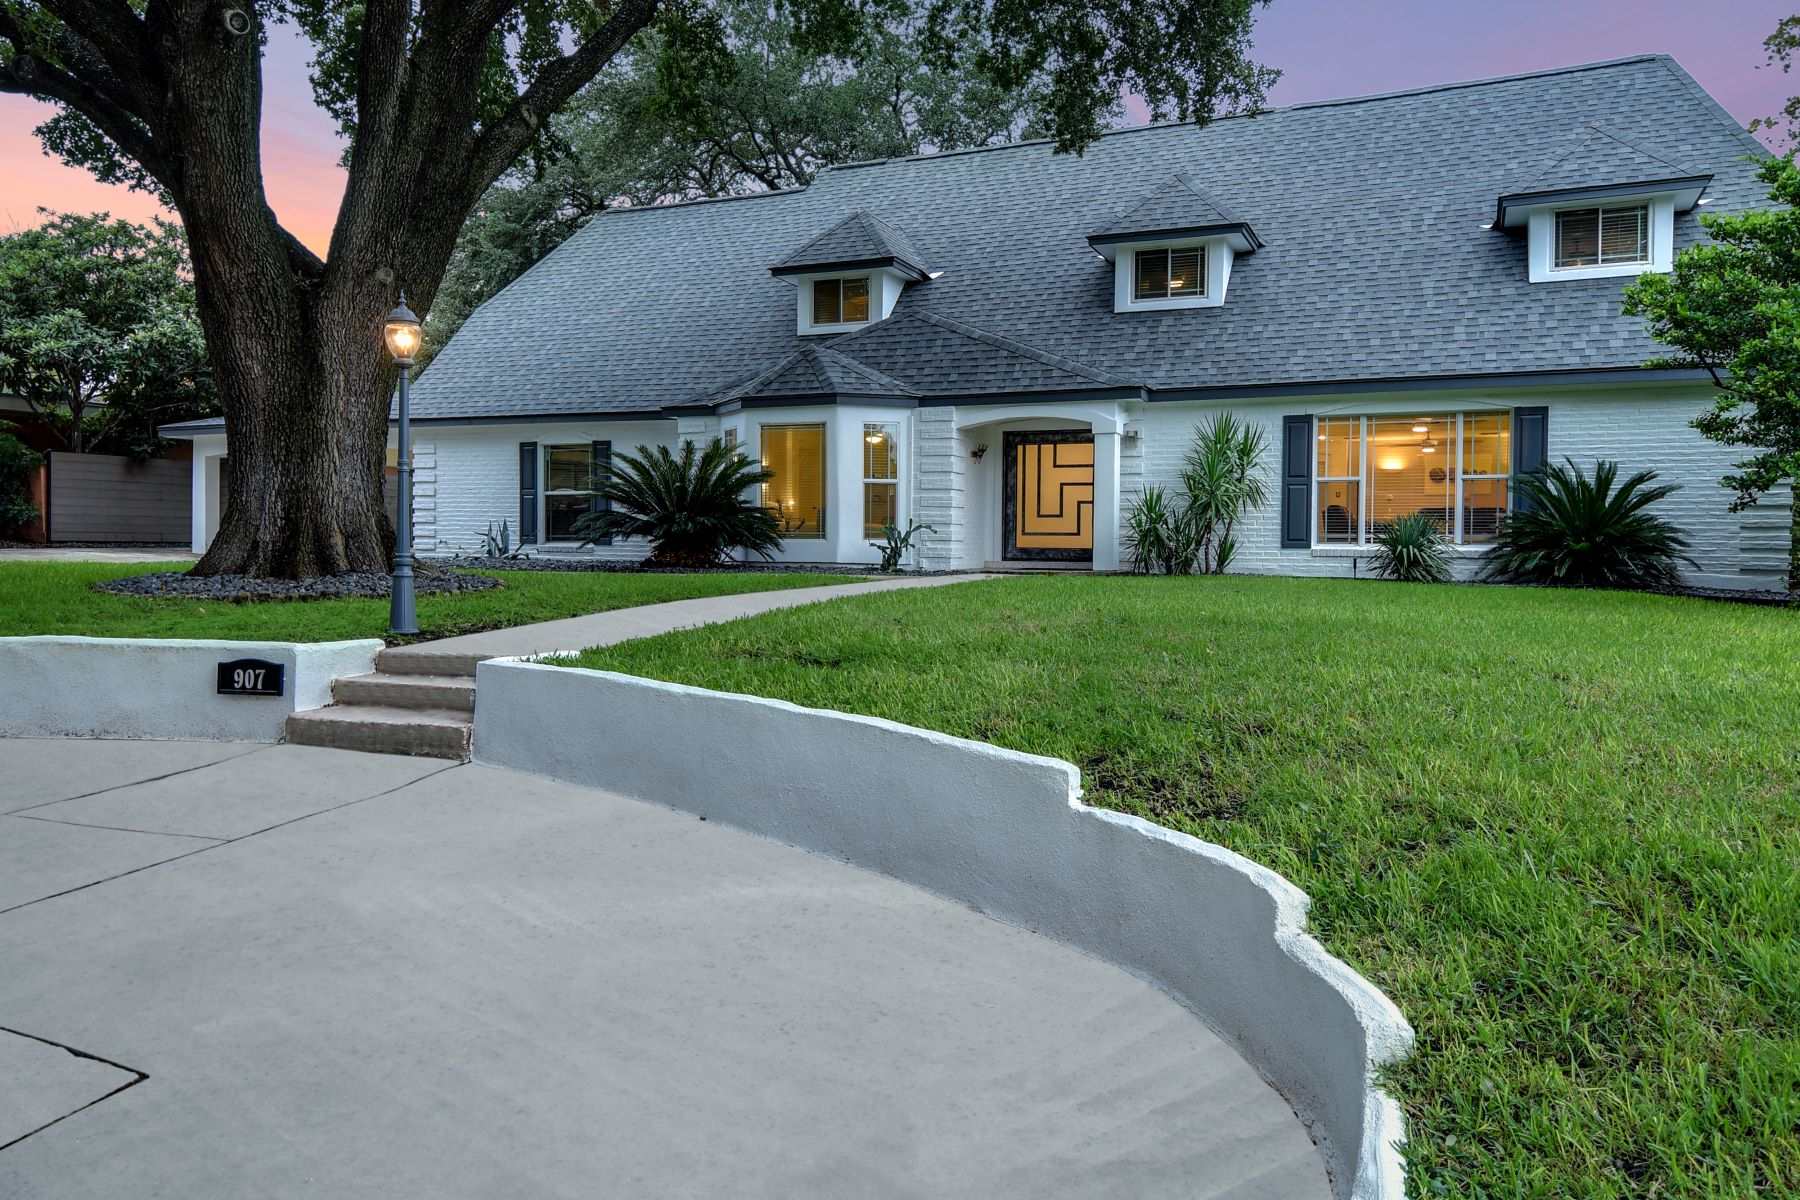 Single Family Homes for Active at Stunning Home in the Heart of Terrell Hills 907 Eventide Drive San Antonio, Texas 78209 United States